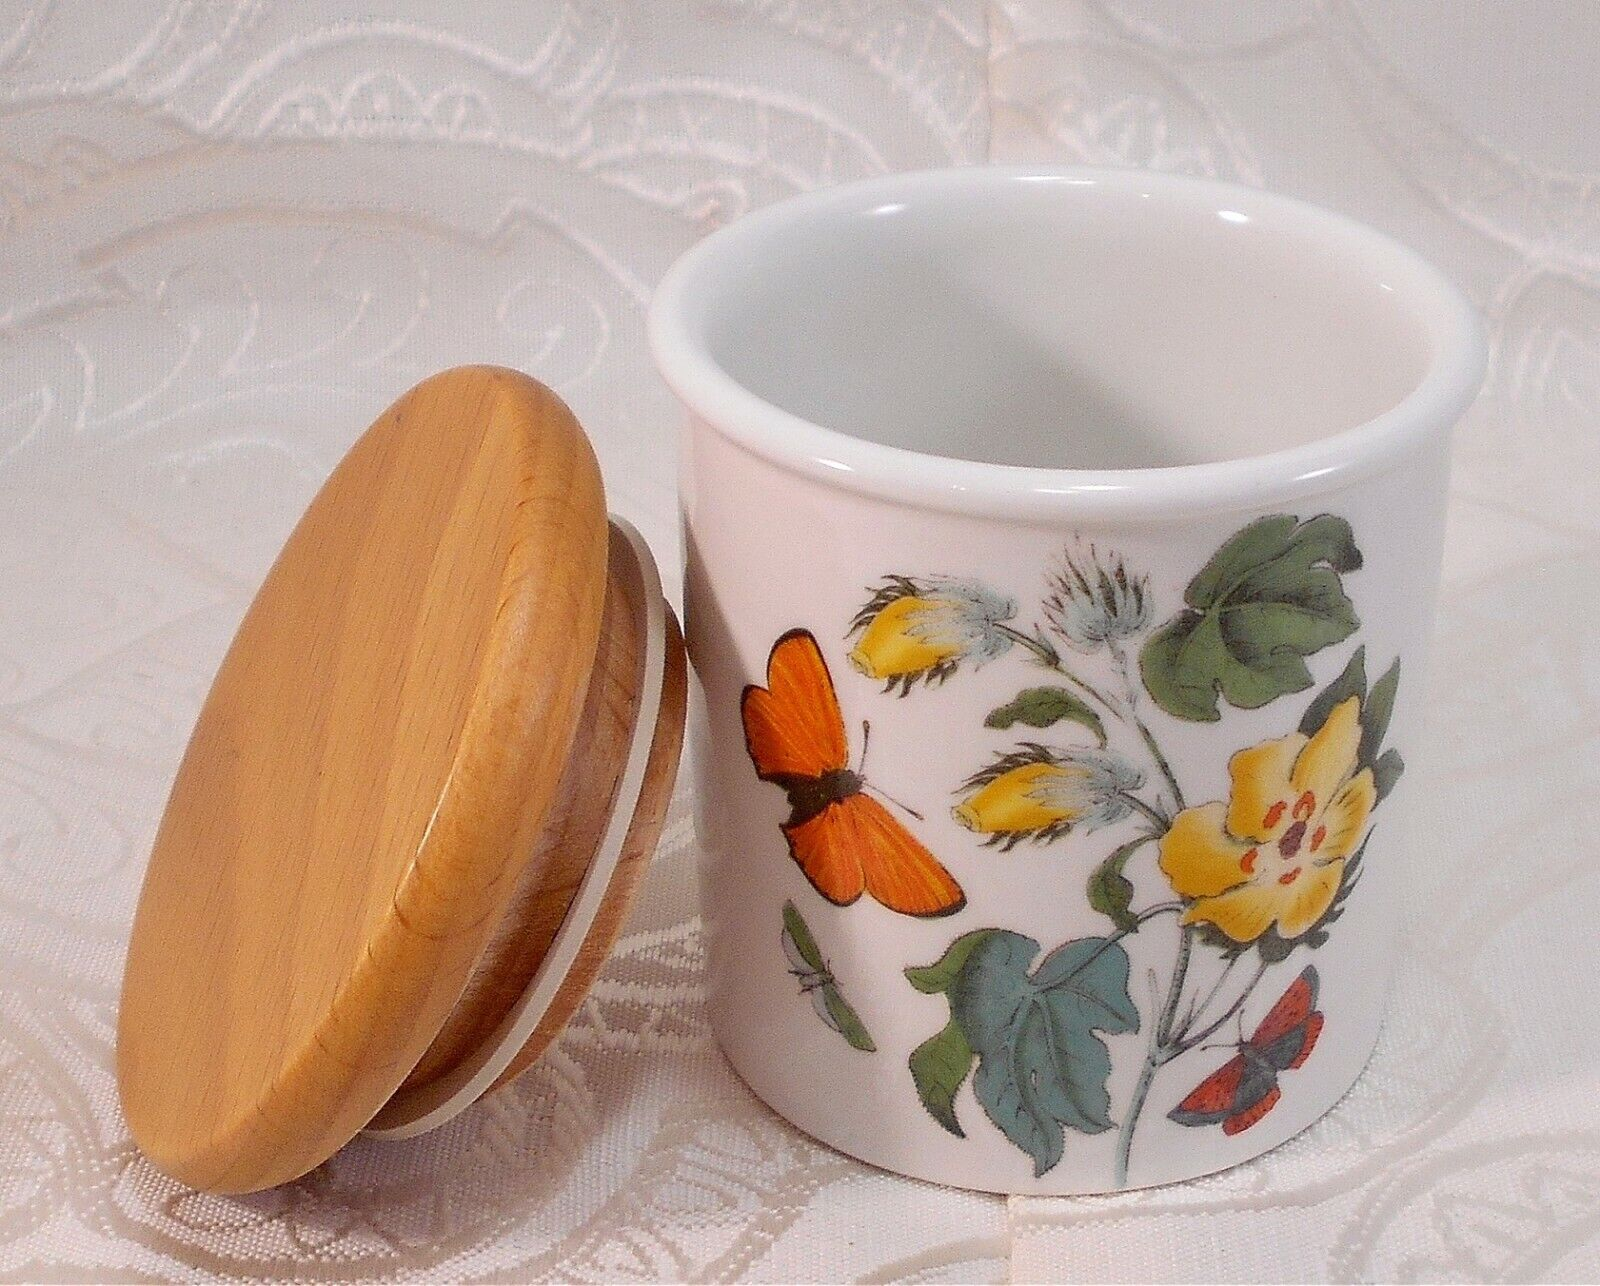 Cotton Flower Portmeirion Spice Jar Wood Lid Small Storage Canister England 1972 - $23.94